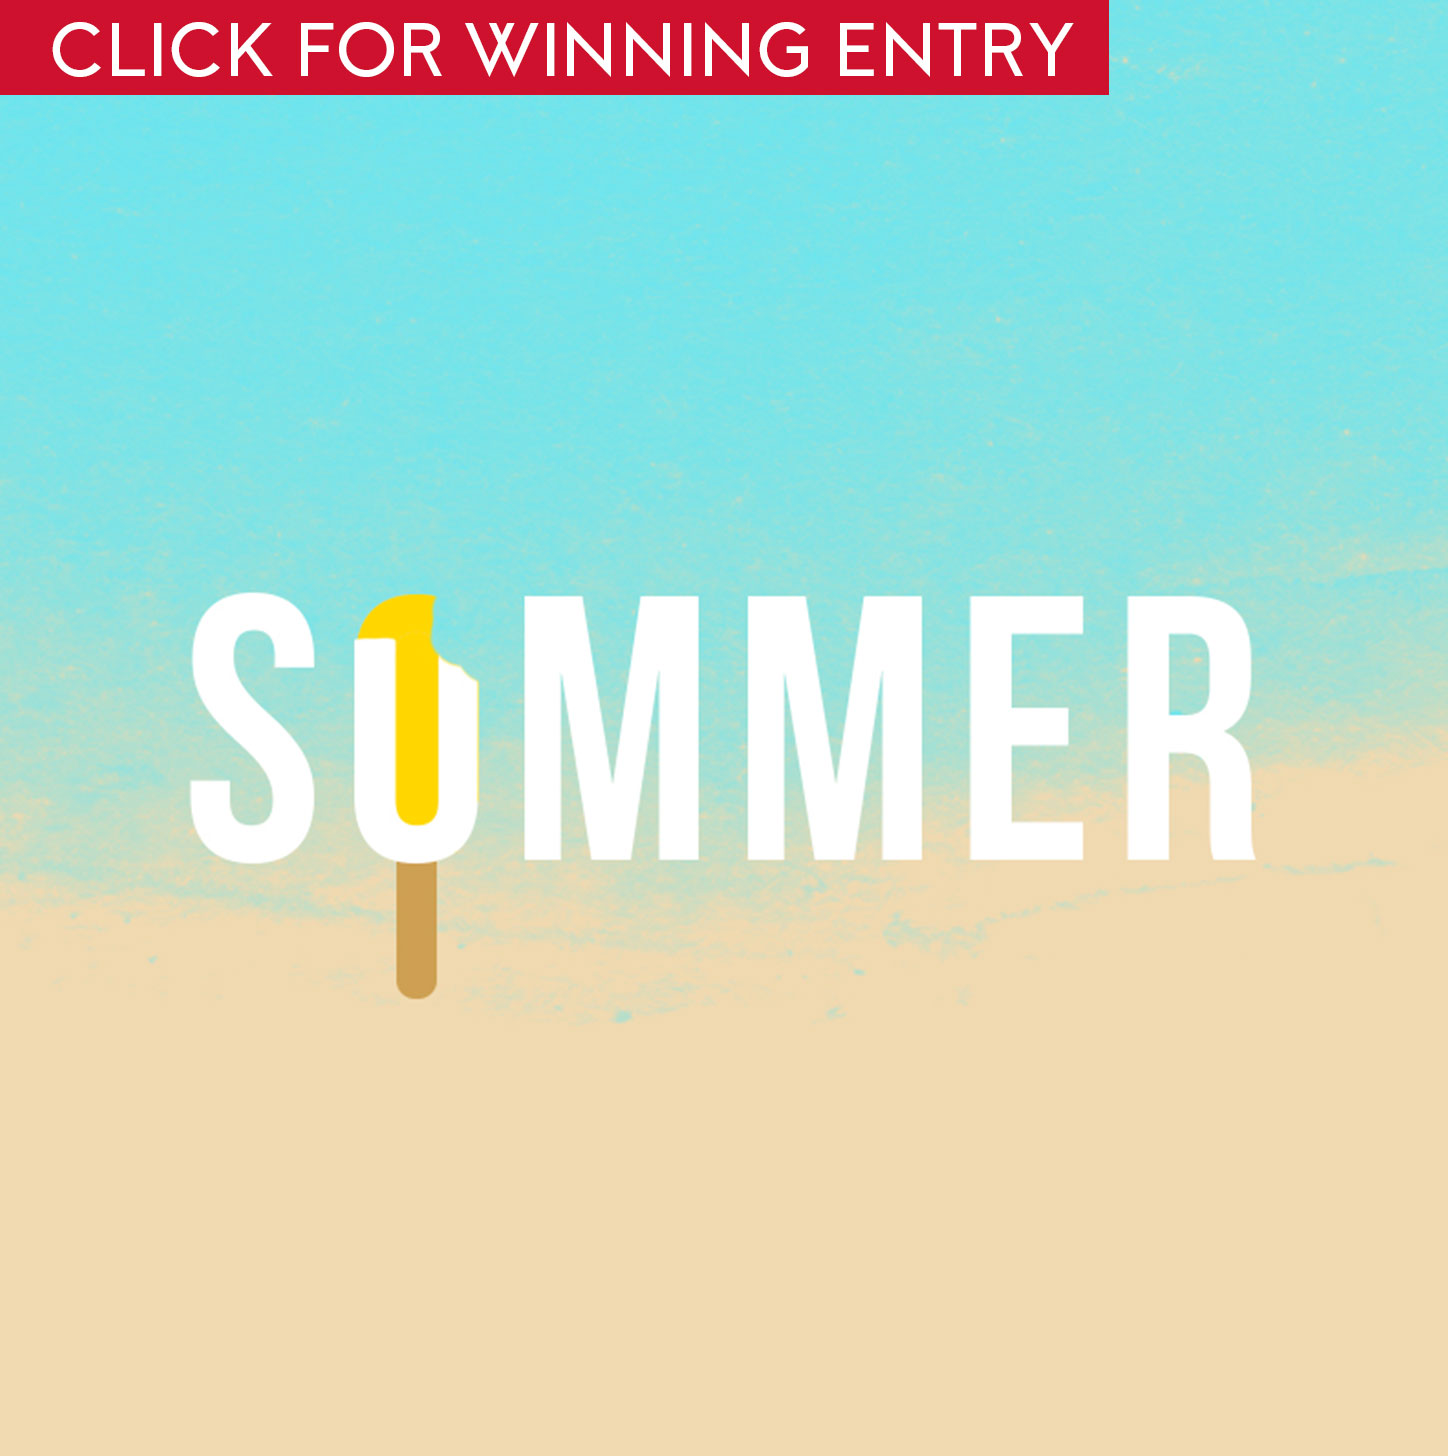 Winner of Arts Illustrated's weekly contest for Illustrators on the theme of 'Summer'.